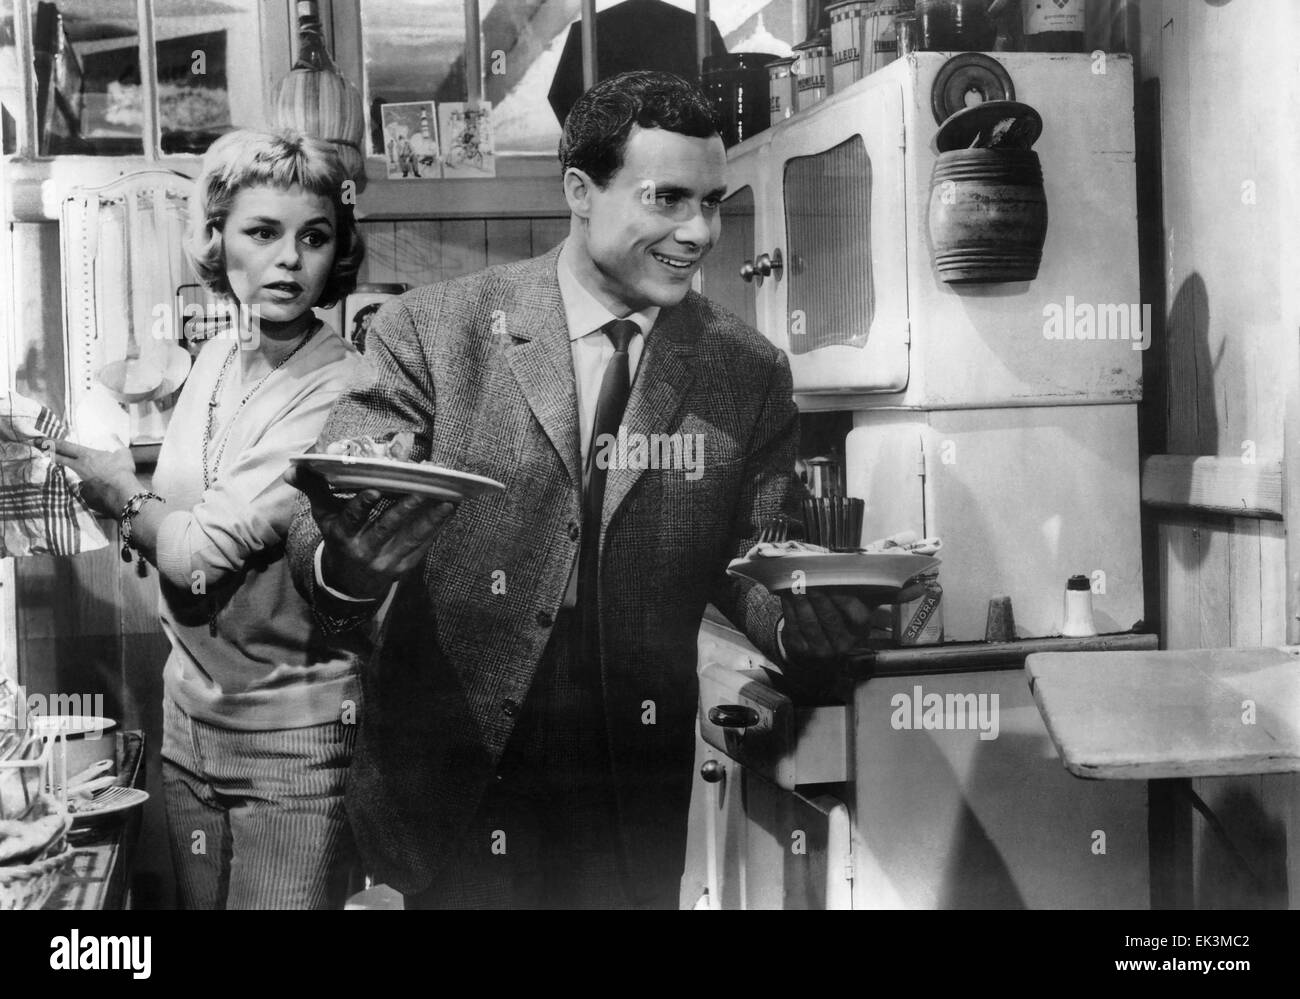 """Genevieve Cluny, Jean-Louis Maury, on-set of the Film """"The Love Game"""" (aka Les Jeux de L'Amour), 1960 Stock Photo"""